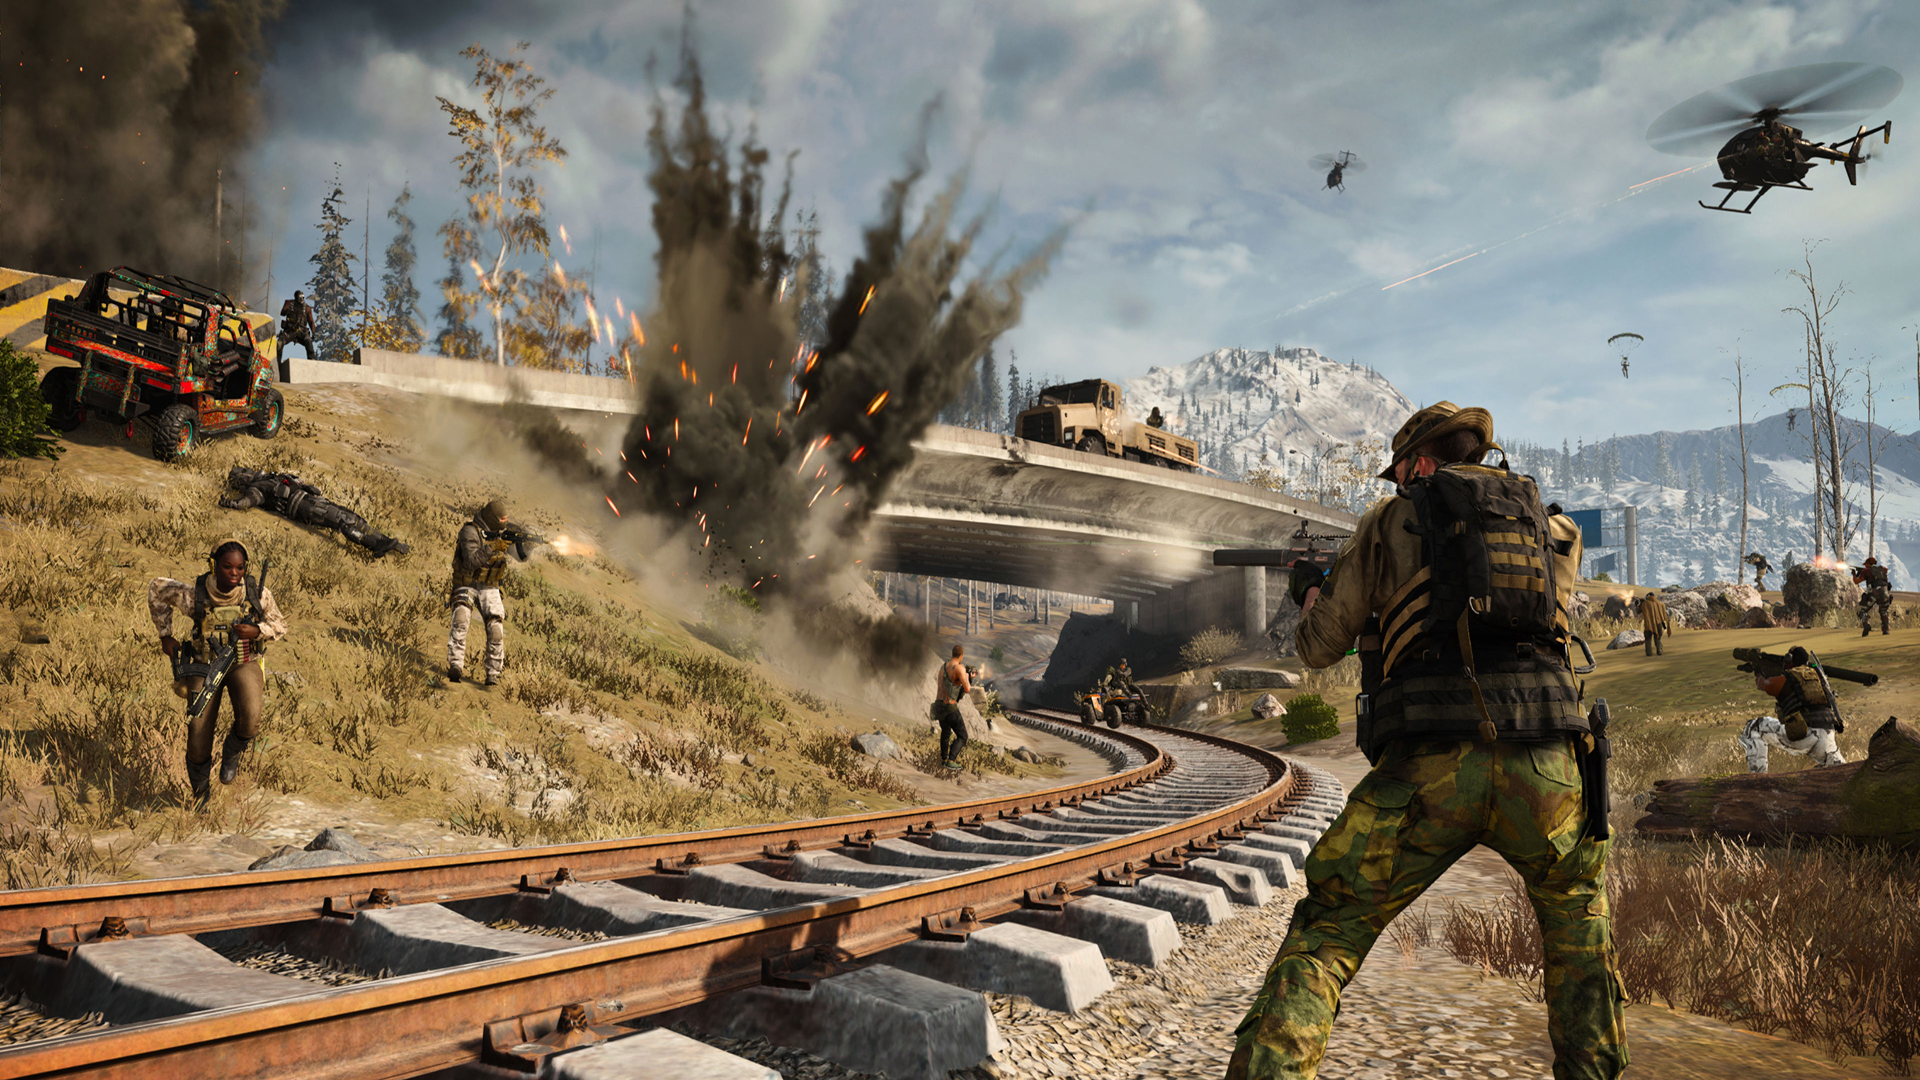 warzone characters shooting around Verdansk's train tracks